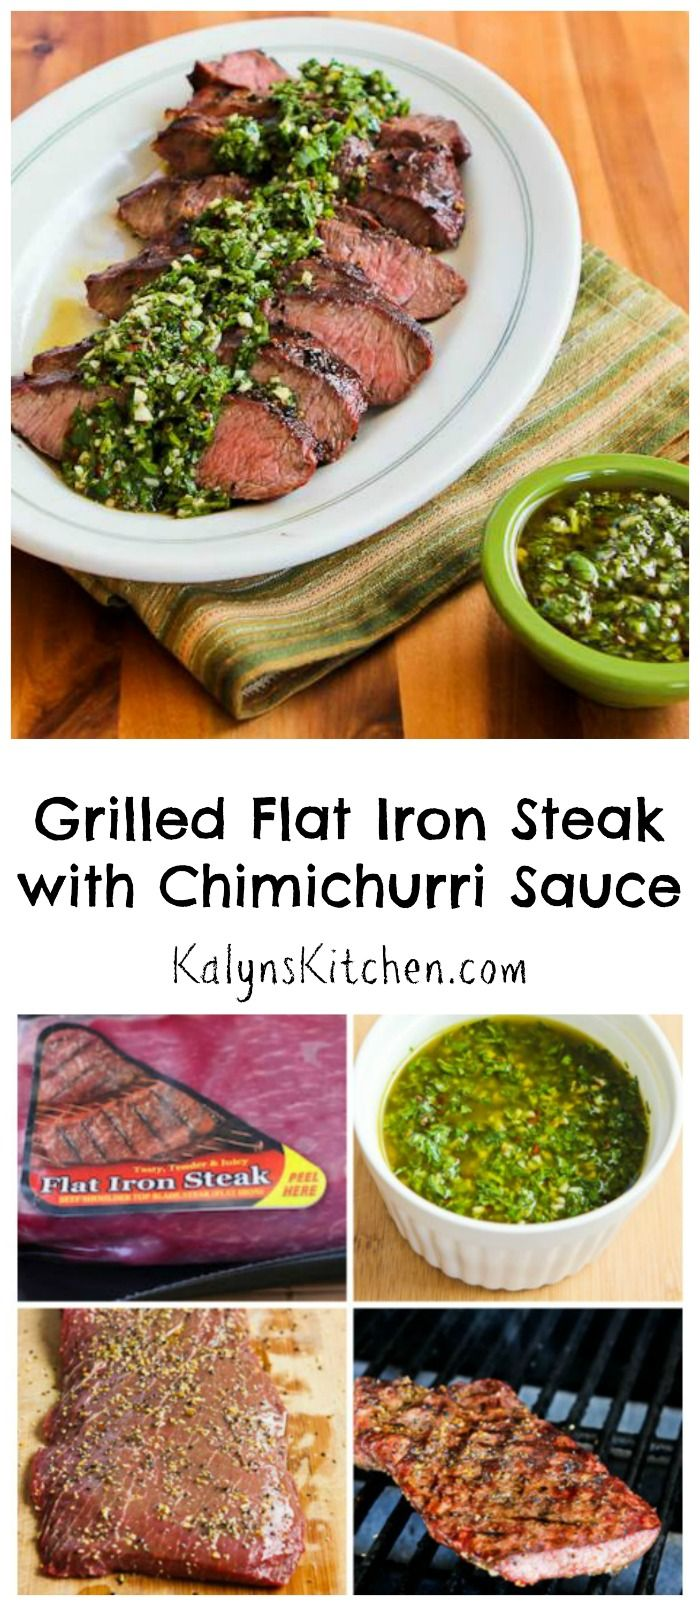 Absolutely love this grilled Flat Iron Steak with Chimichurri Sauce; so fresh tasting and delicious and this recipe is Low-Carb, Gluten-Free, and Paleo.  This is perfect for all those summer holidays that involve grilling, and your guests will be impressed!  [from KalynsKitchen.com]